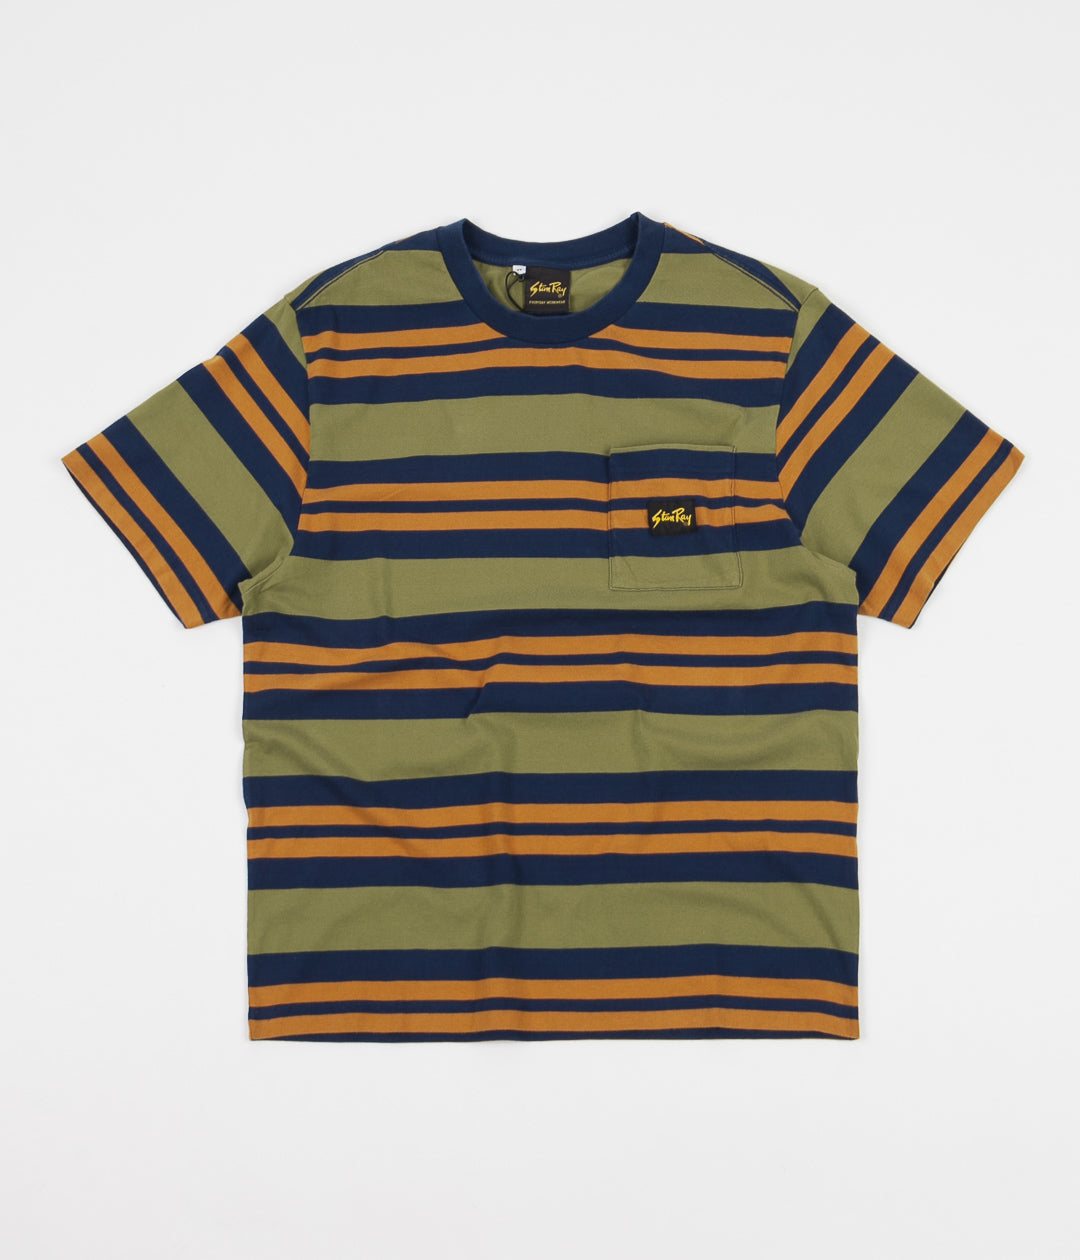 Stan Ray Yarn Dye Stripe Thick T-Shirt - Navy Border Stripe